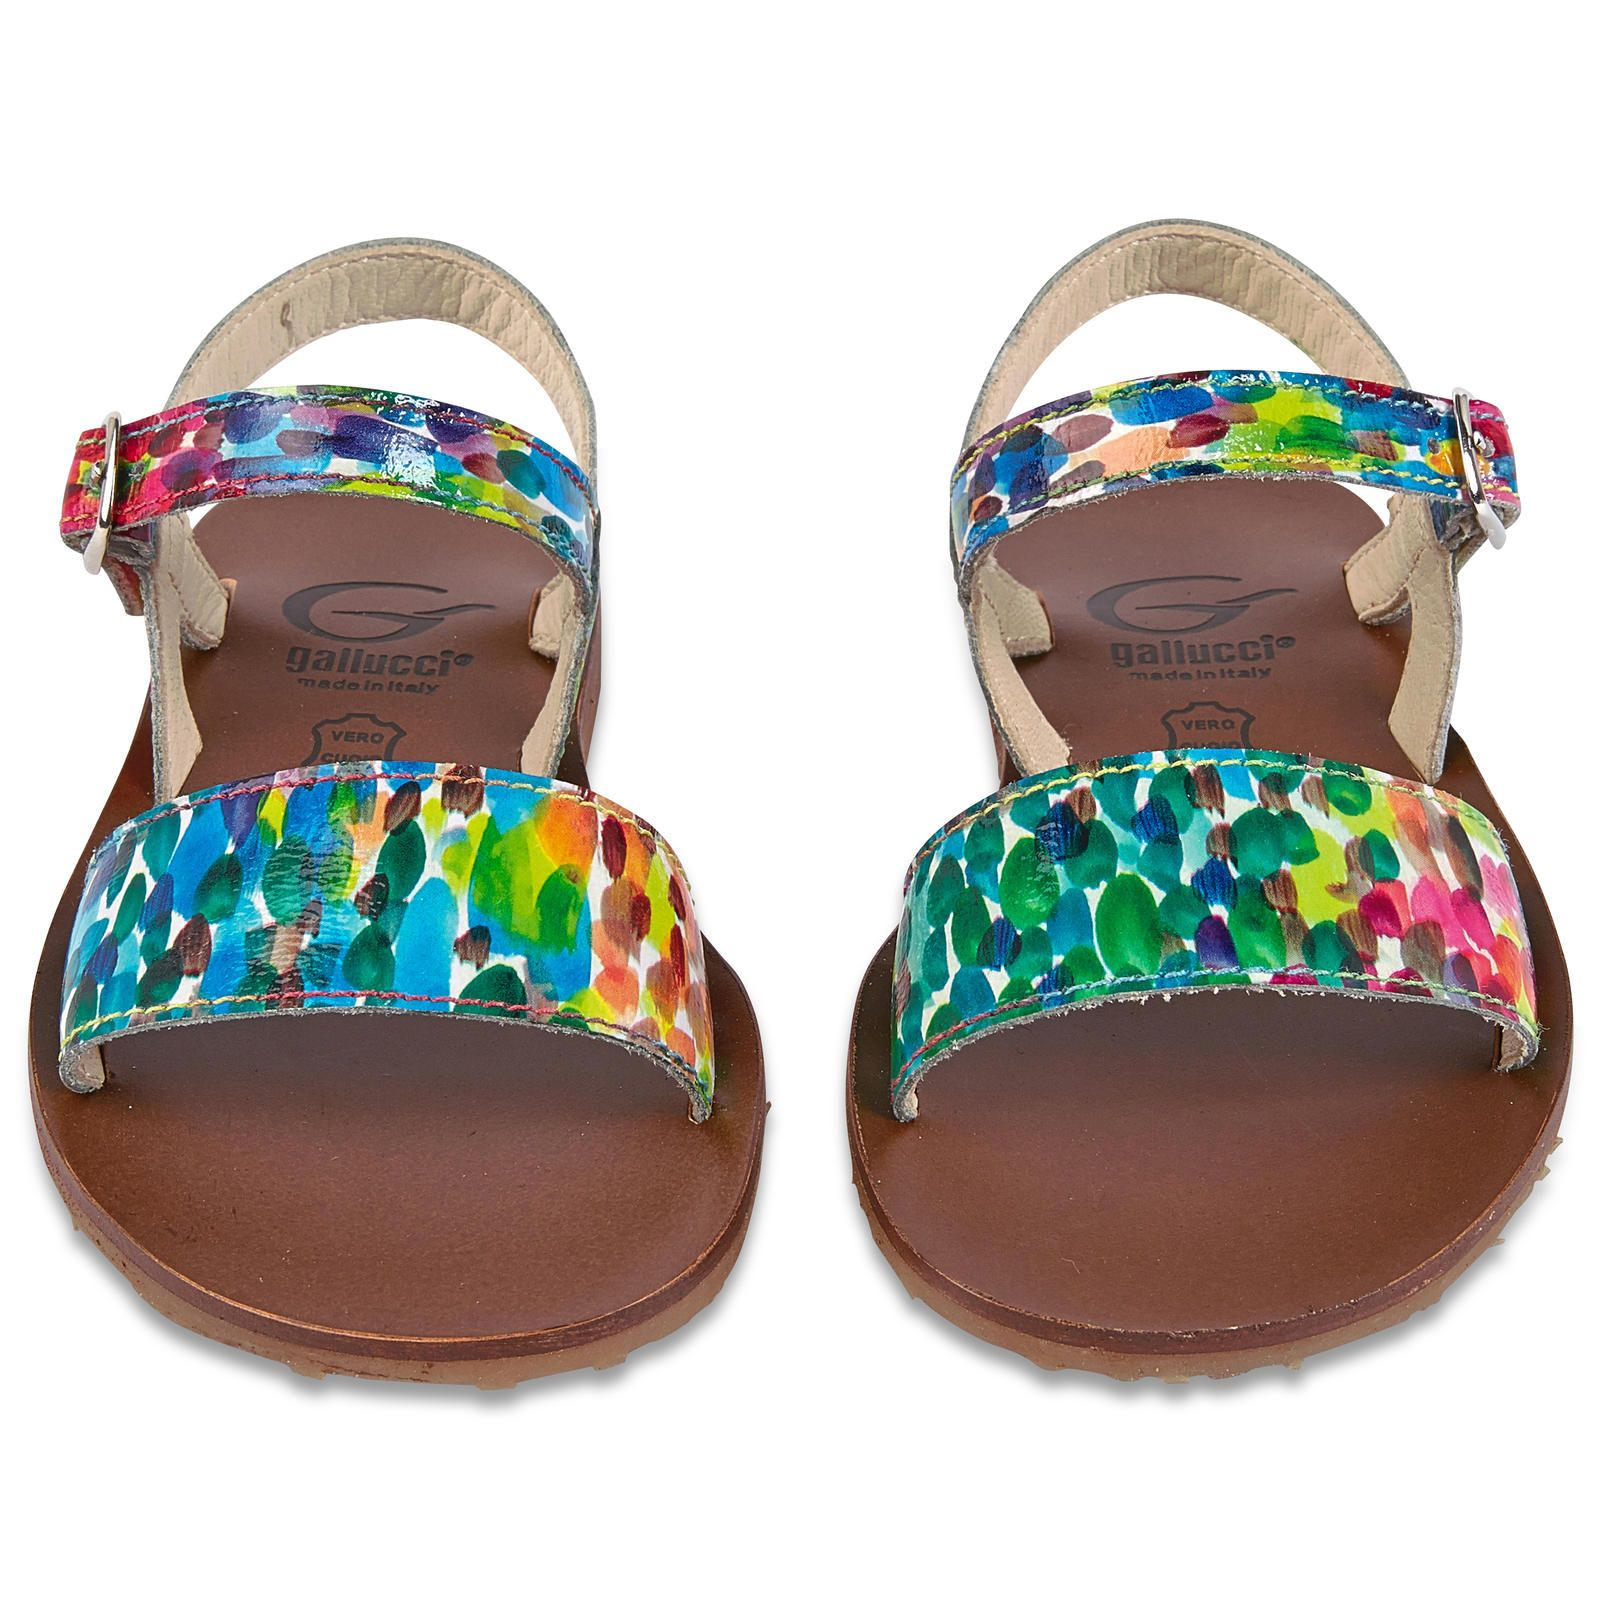 Leather sandals - 121627